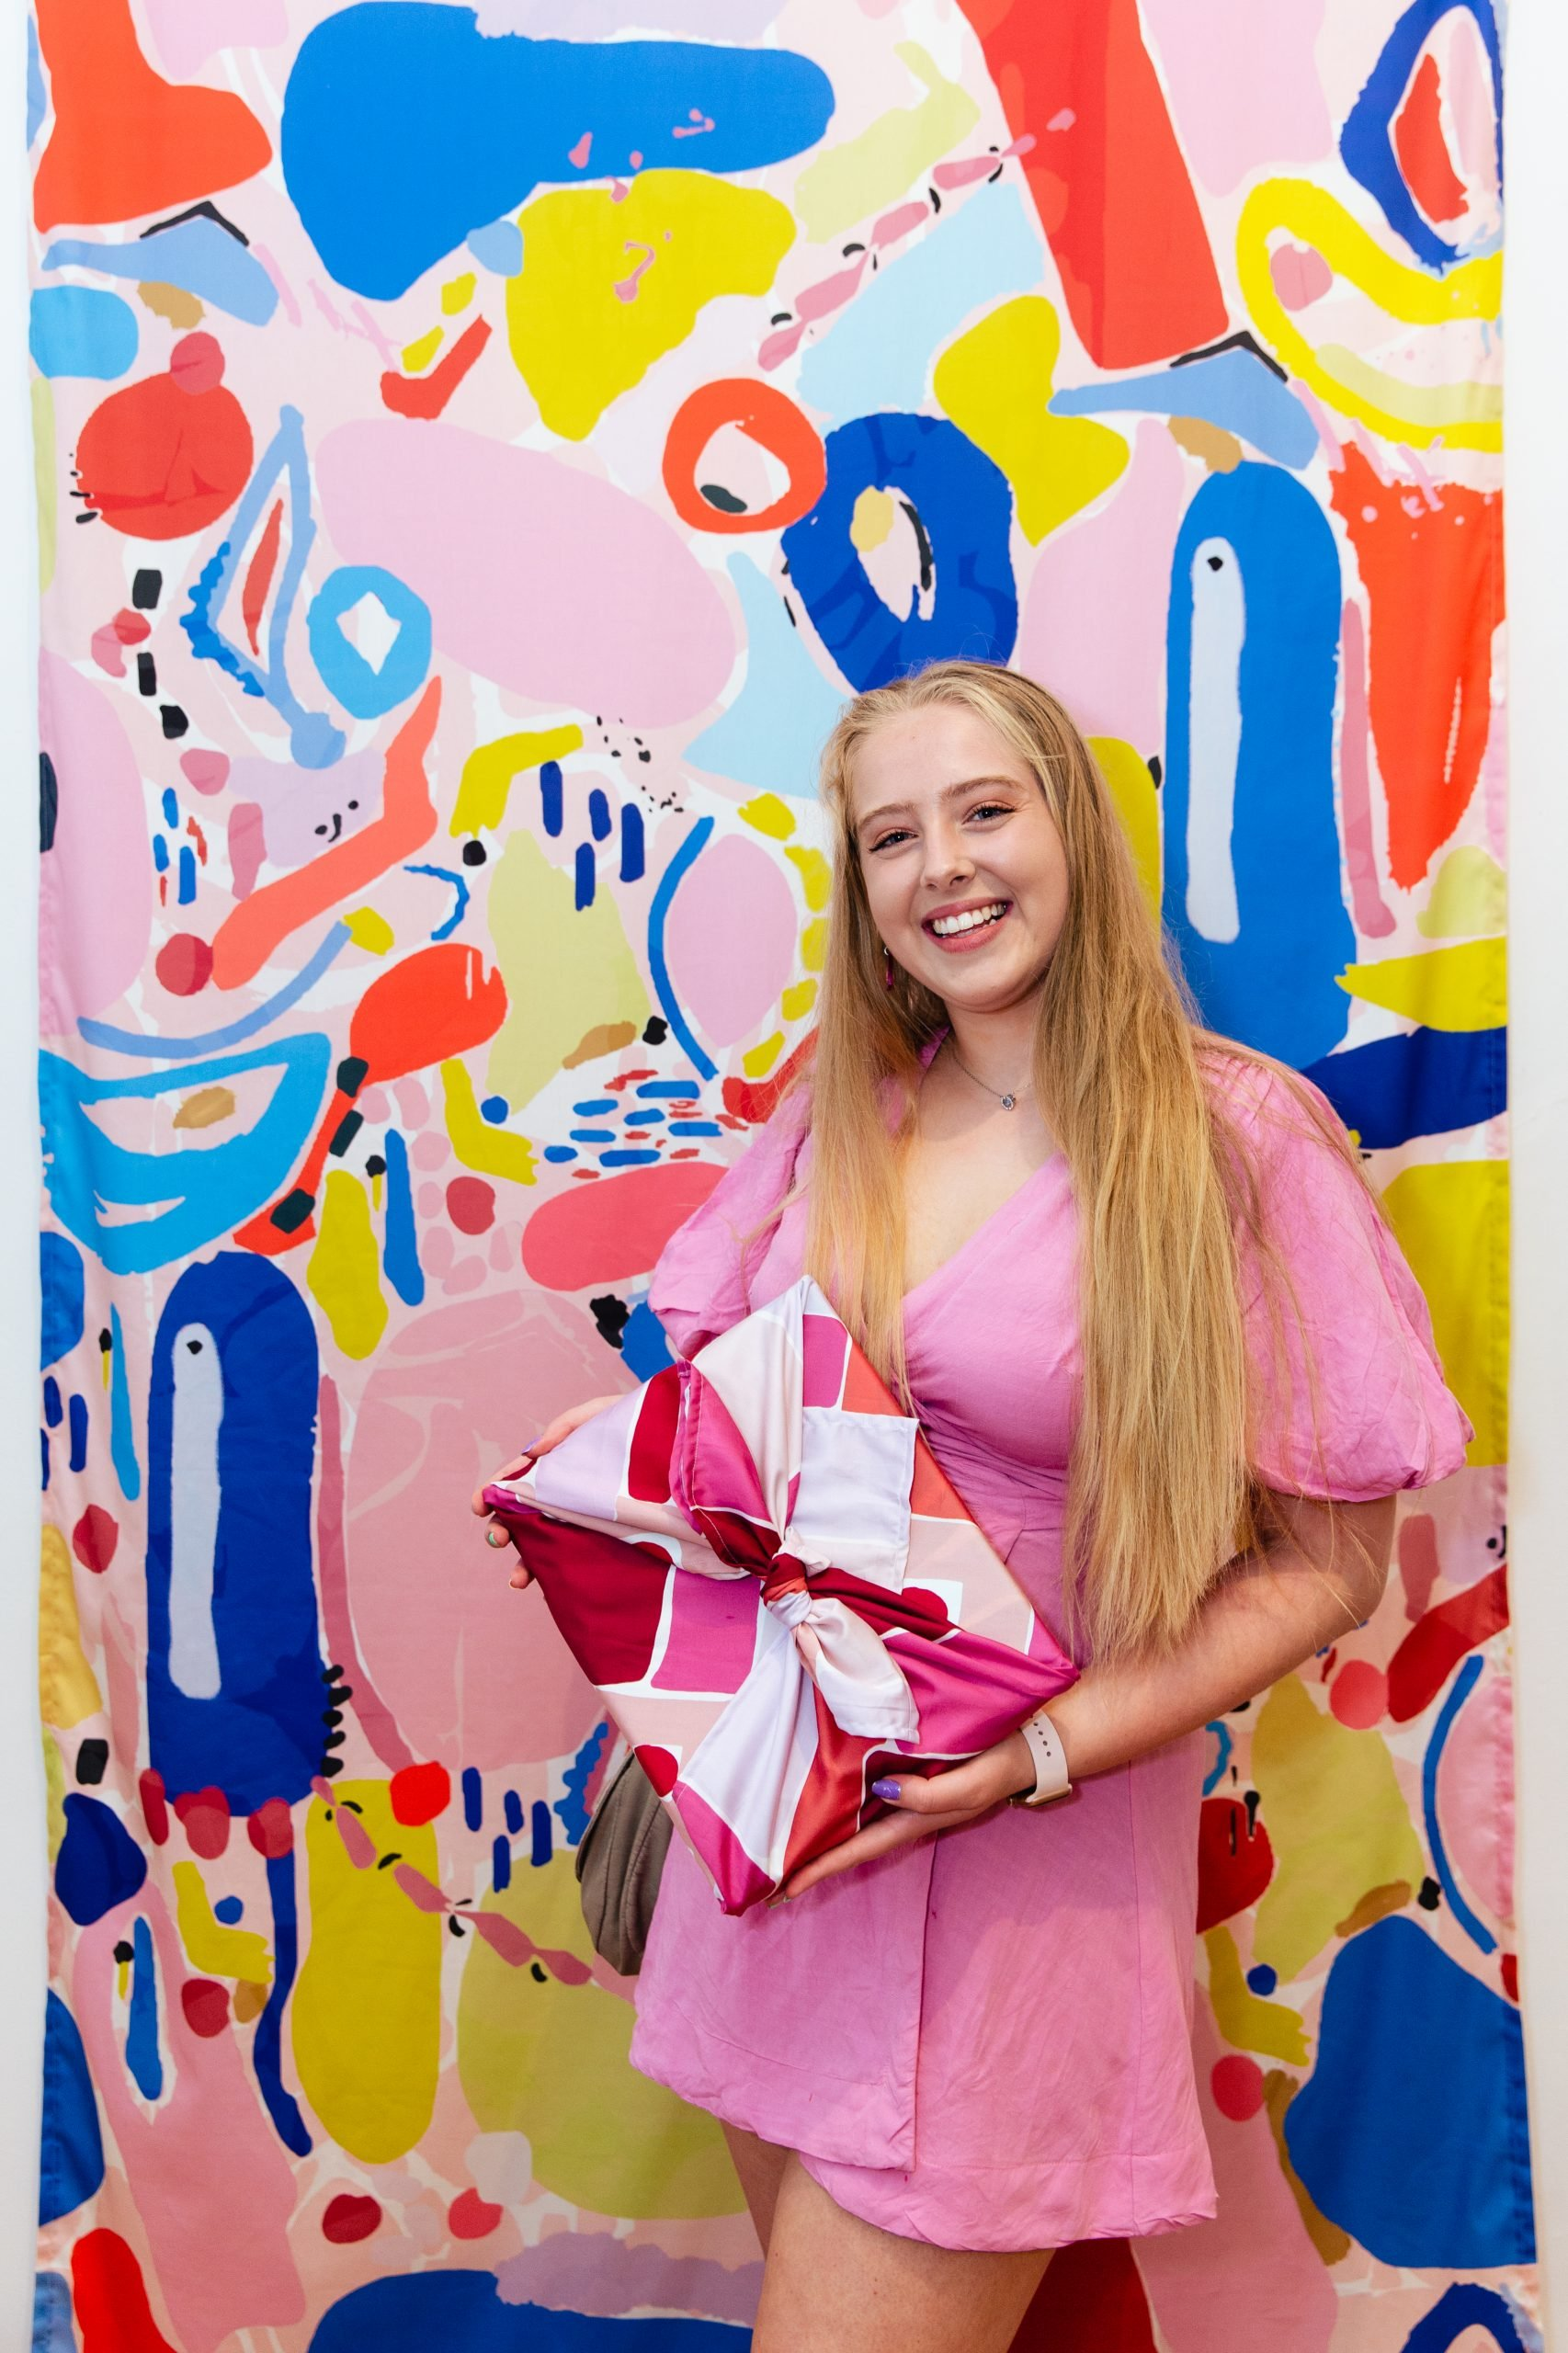 girl holding fabric wrapped artwork in front of a colourful pink fabric print